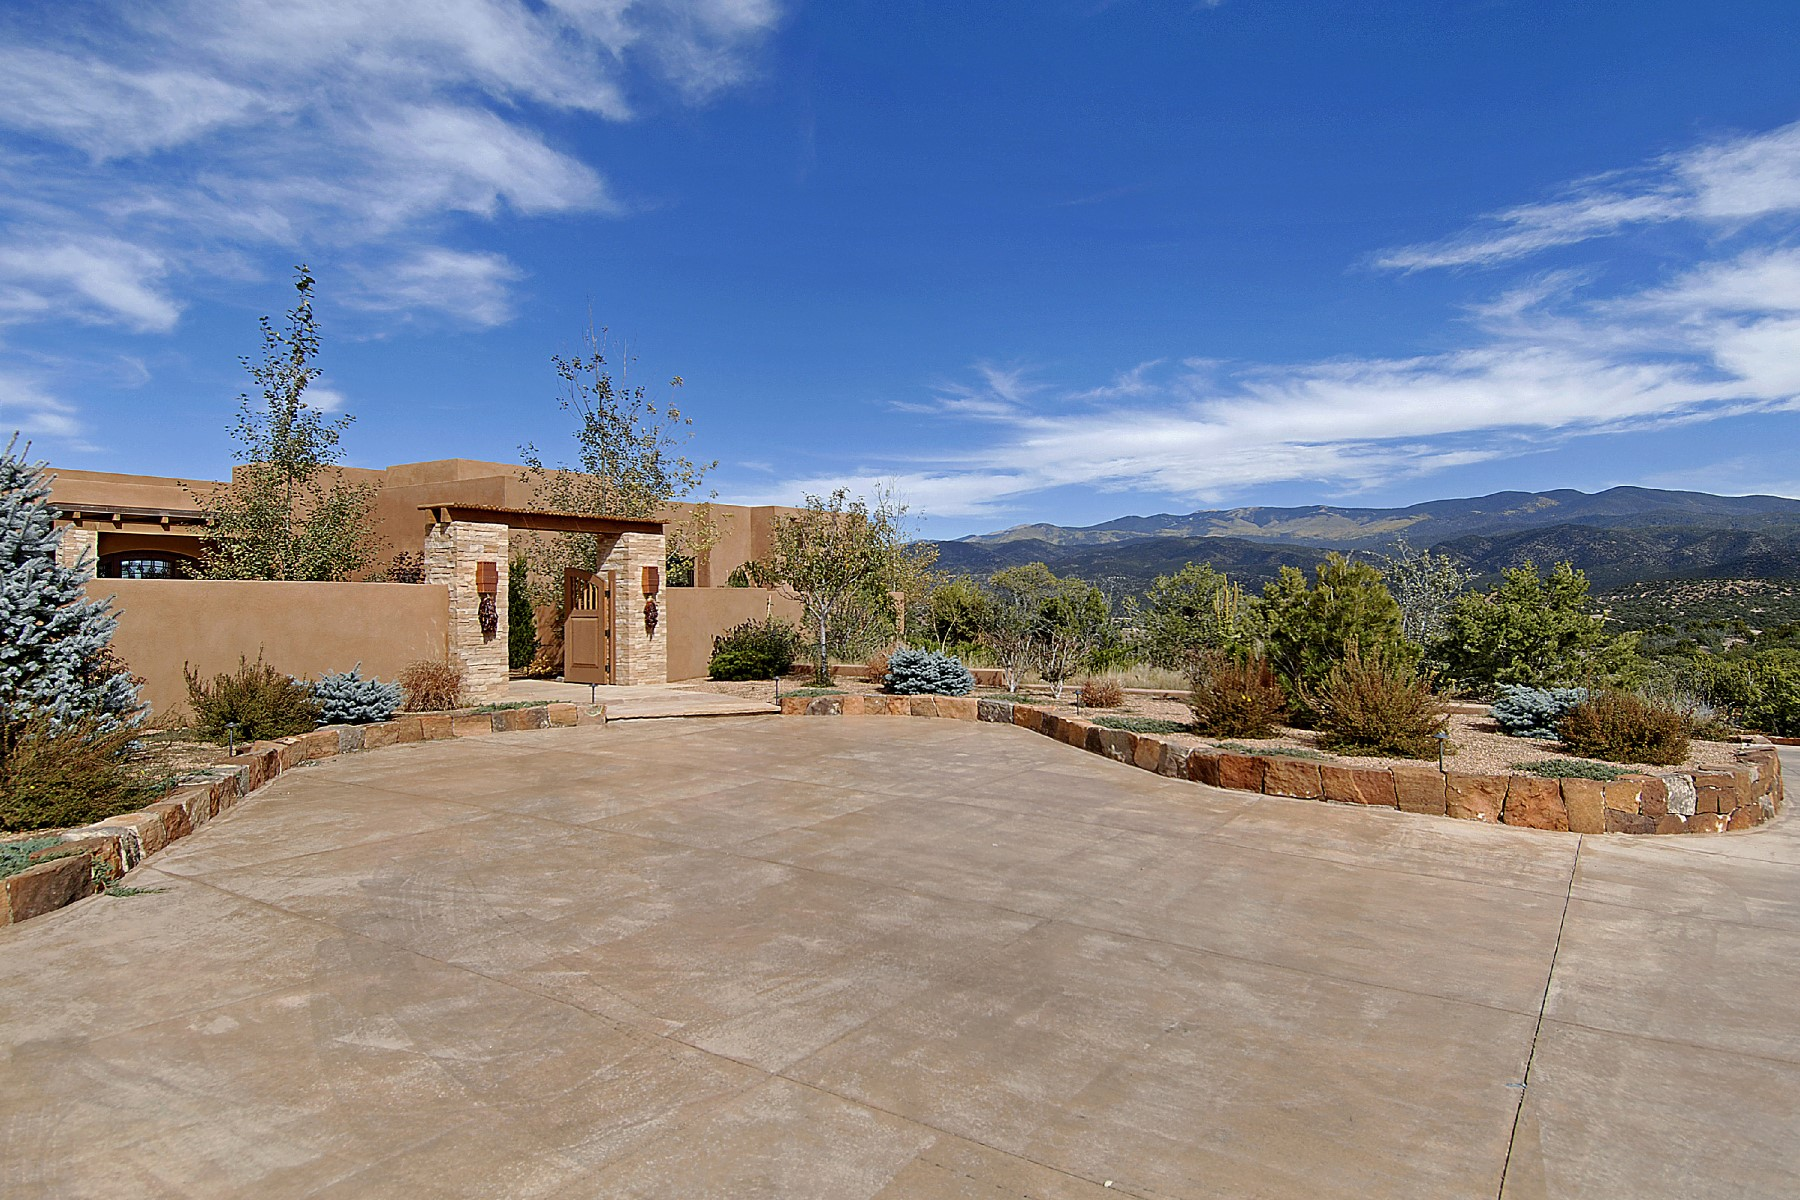 Single Family Home for Sale at 2964 Aspen View Monte Sereno, Santa Fe, New Mexico 87506 United States